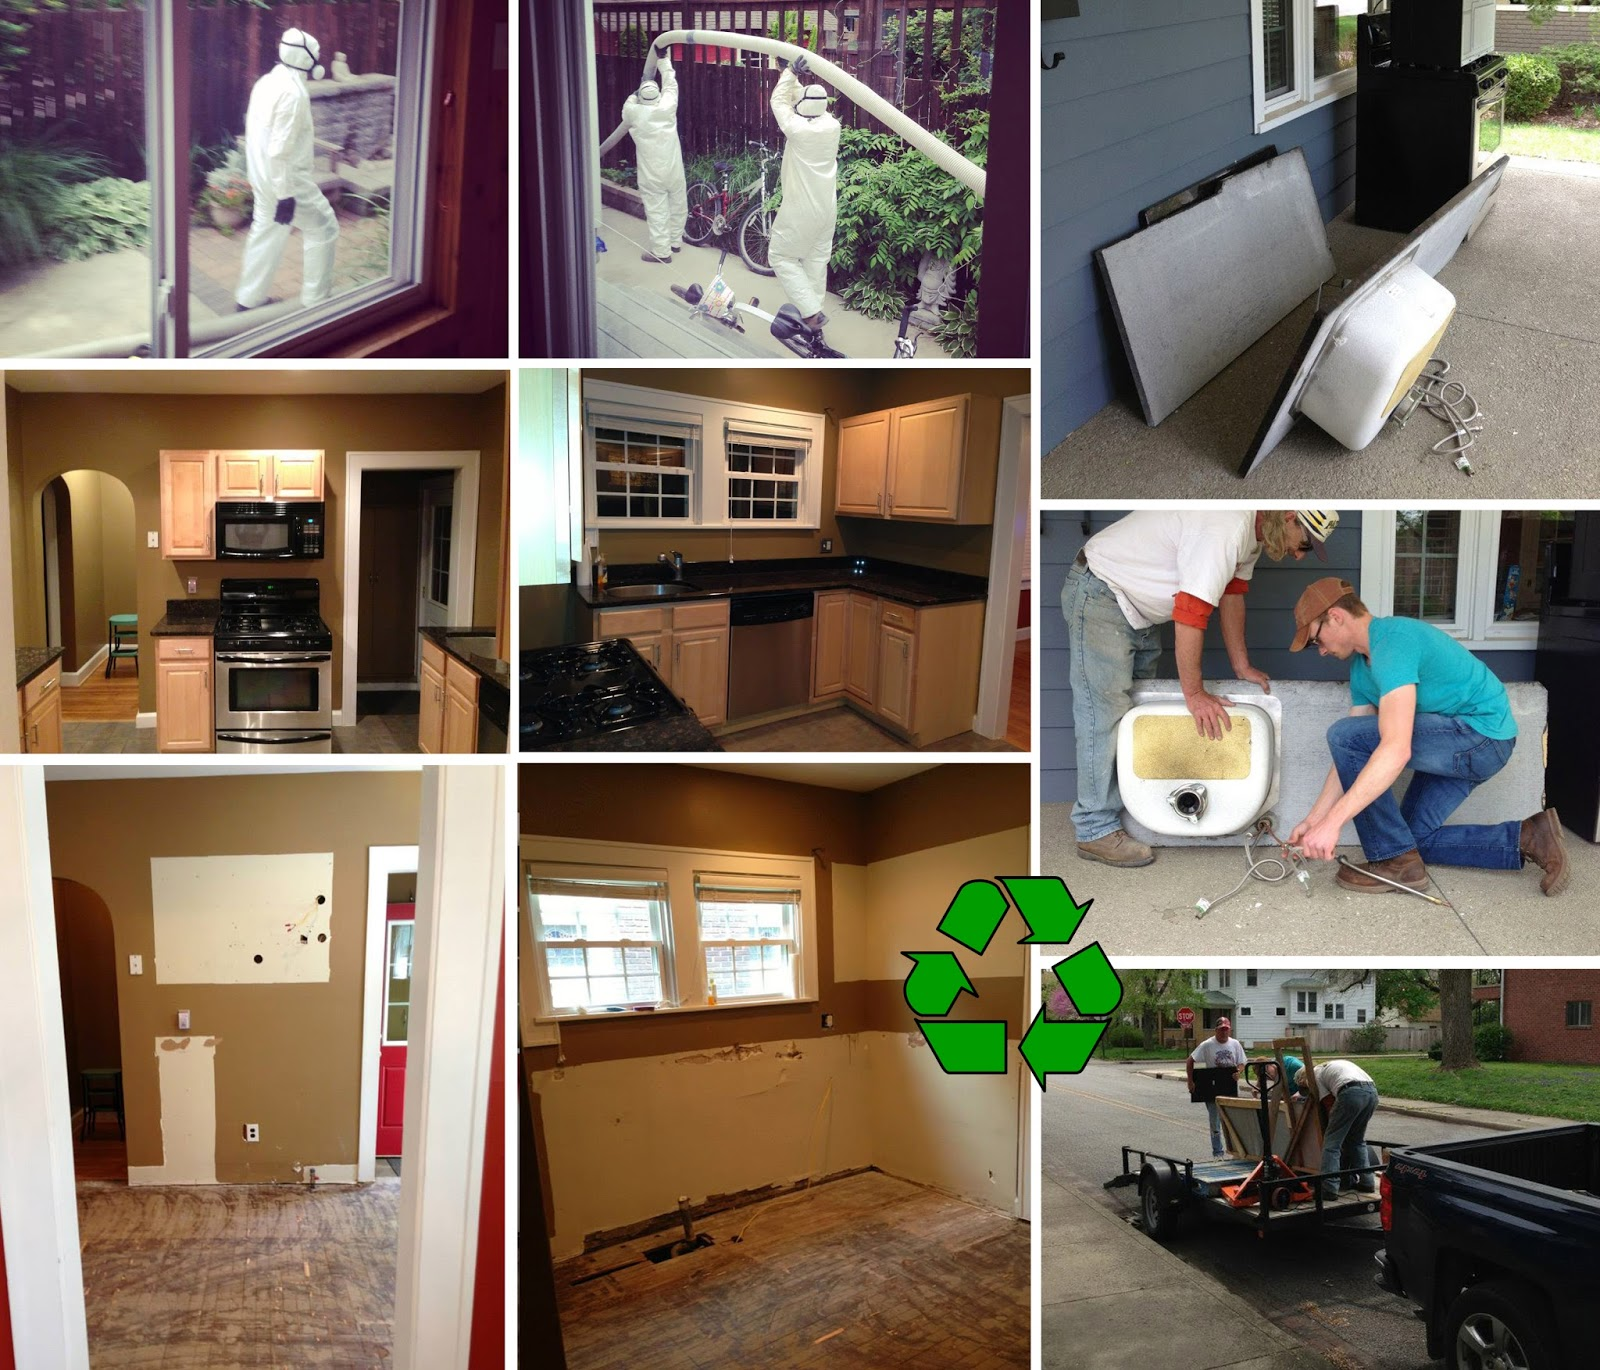 Main house remodel: asbestos removal and repurposing of existing kitchen.